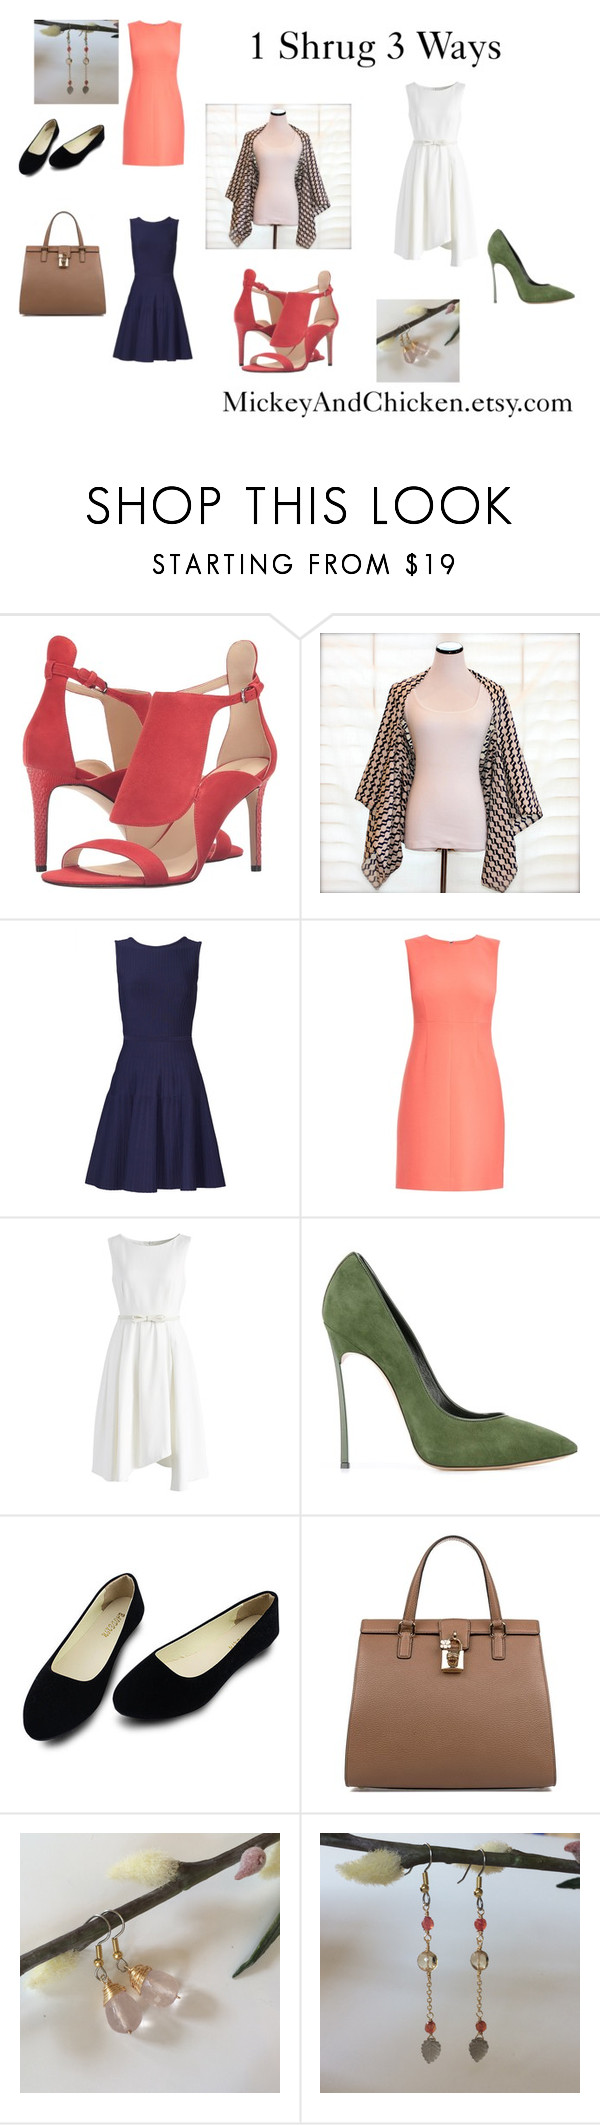 """1 Shrug 3 Ways"" by janet-london ❤ liked on Polyvore featuring Nine West, Pink Tartan, Diane Von Furstenberg, Chicwish, Casadei, Dolce&Gabbana, vintage, stylish and kimono"